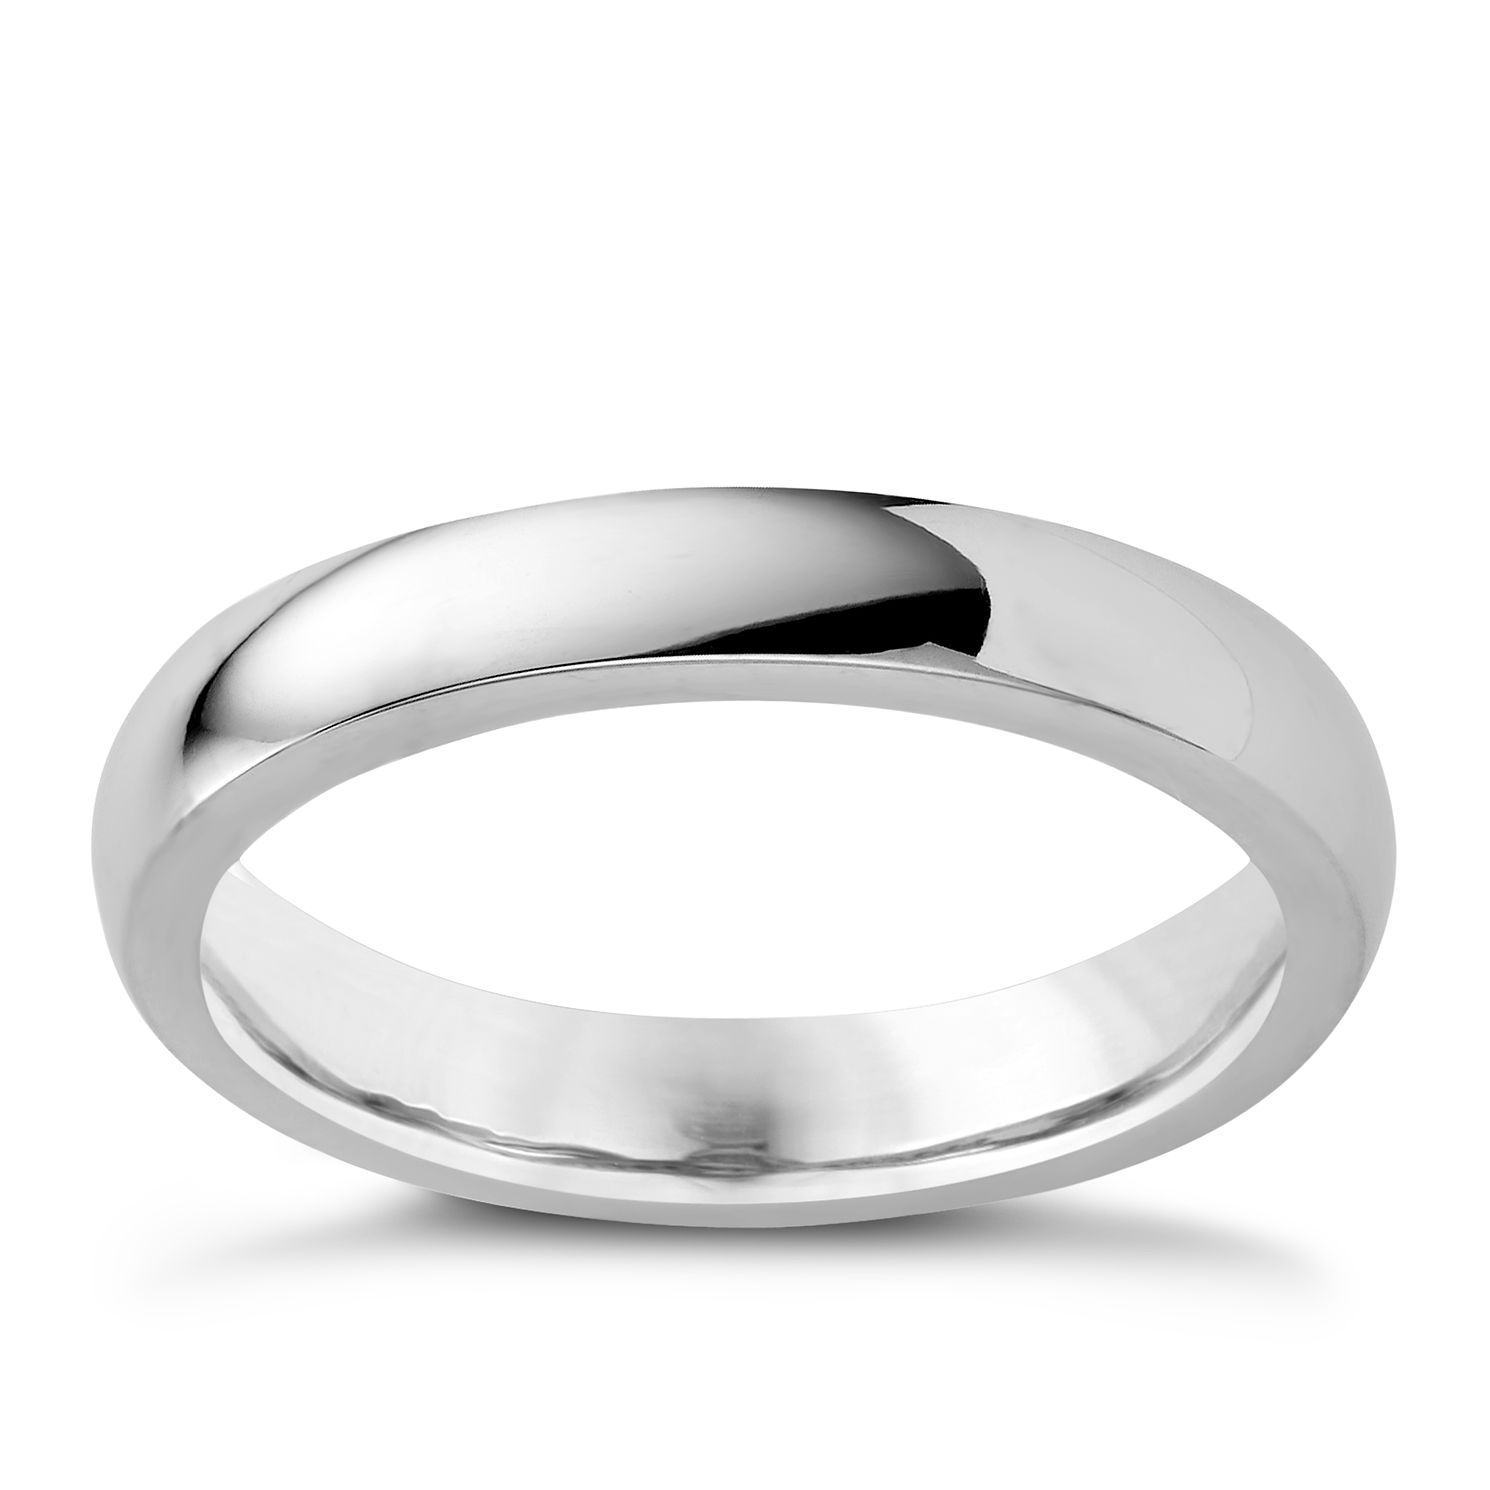 from huitfeldt bespoke moltke anna jewellery ethical commissions design file ocean rings inspired wedding ring classic